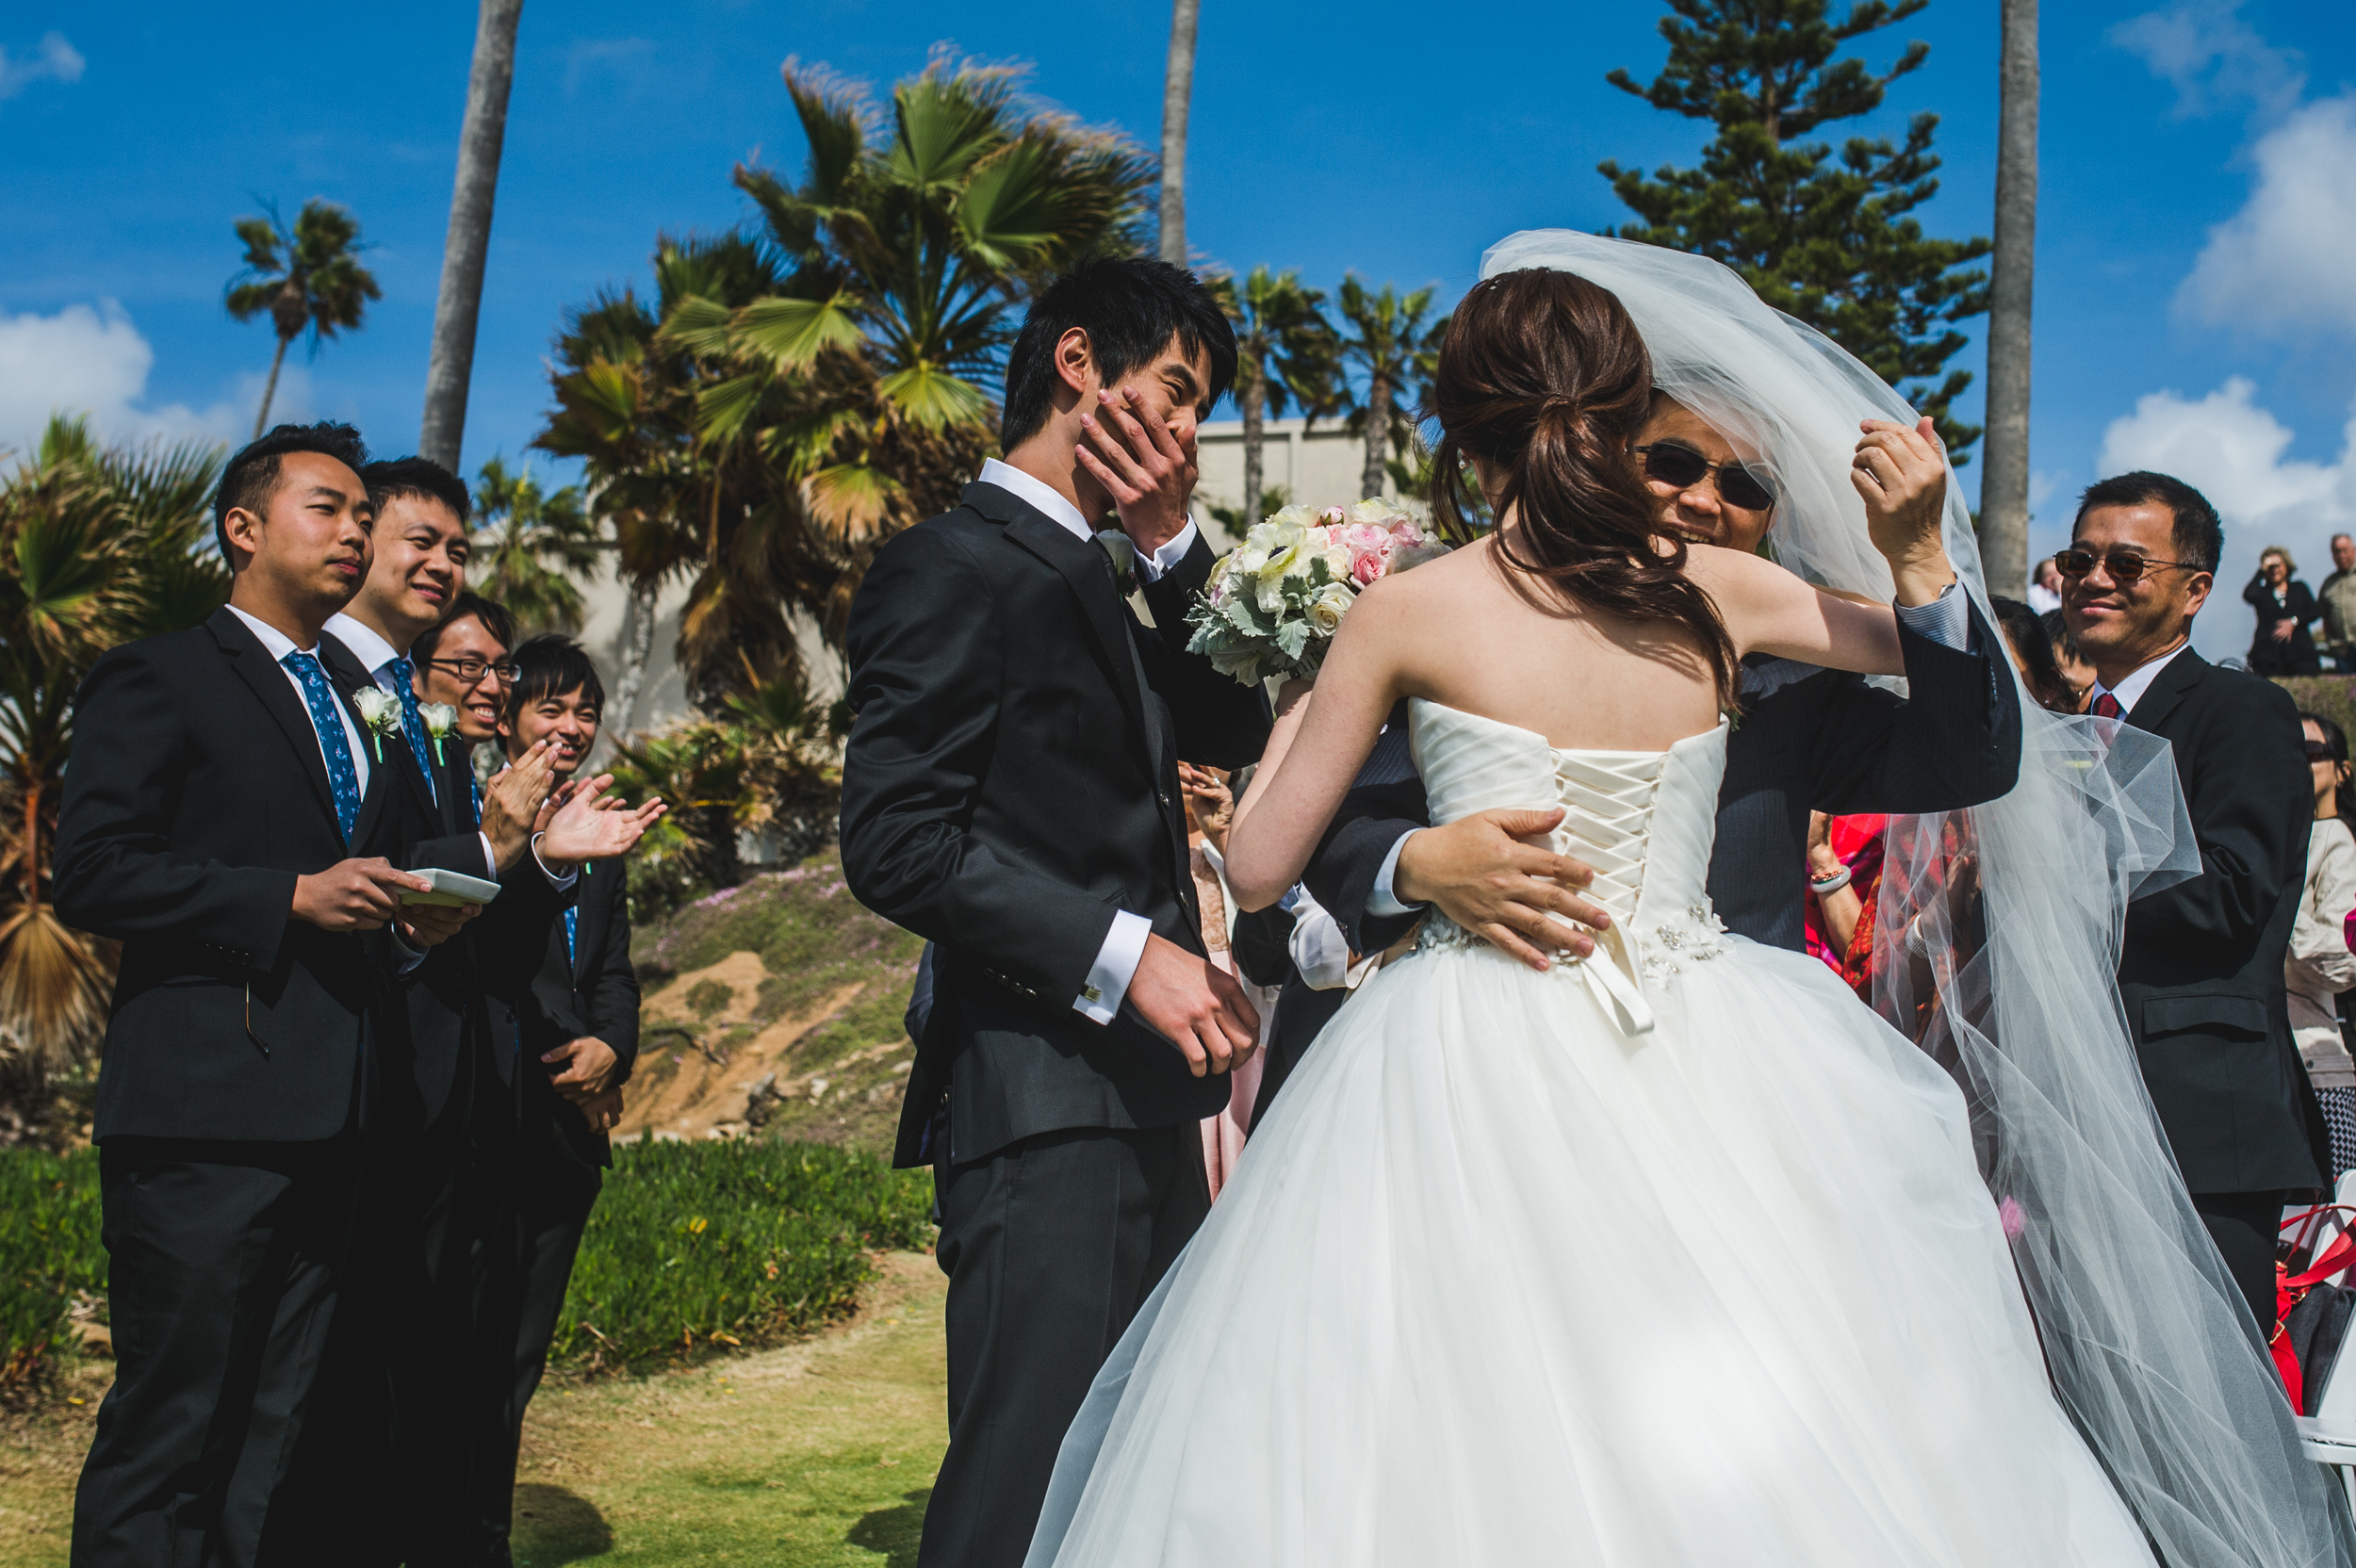 Wedding Photography La Jolla Beach CA-6.jpg